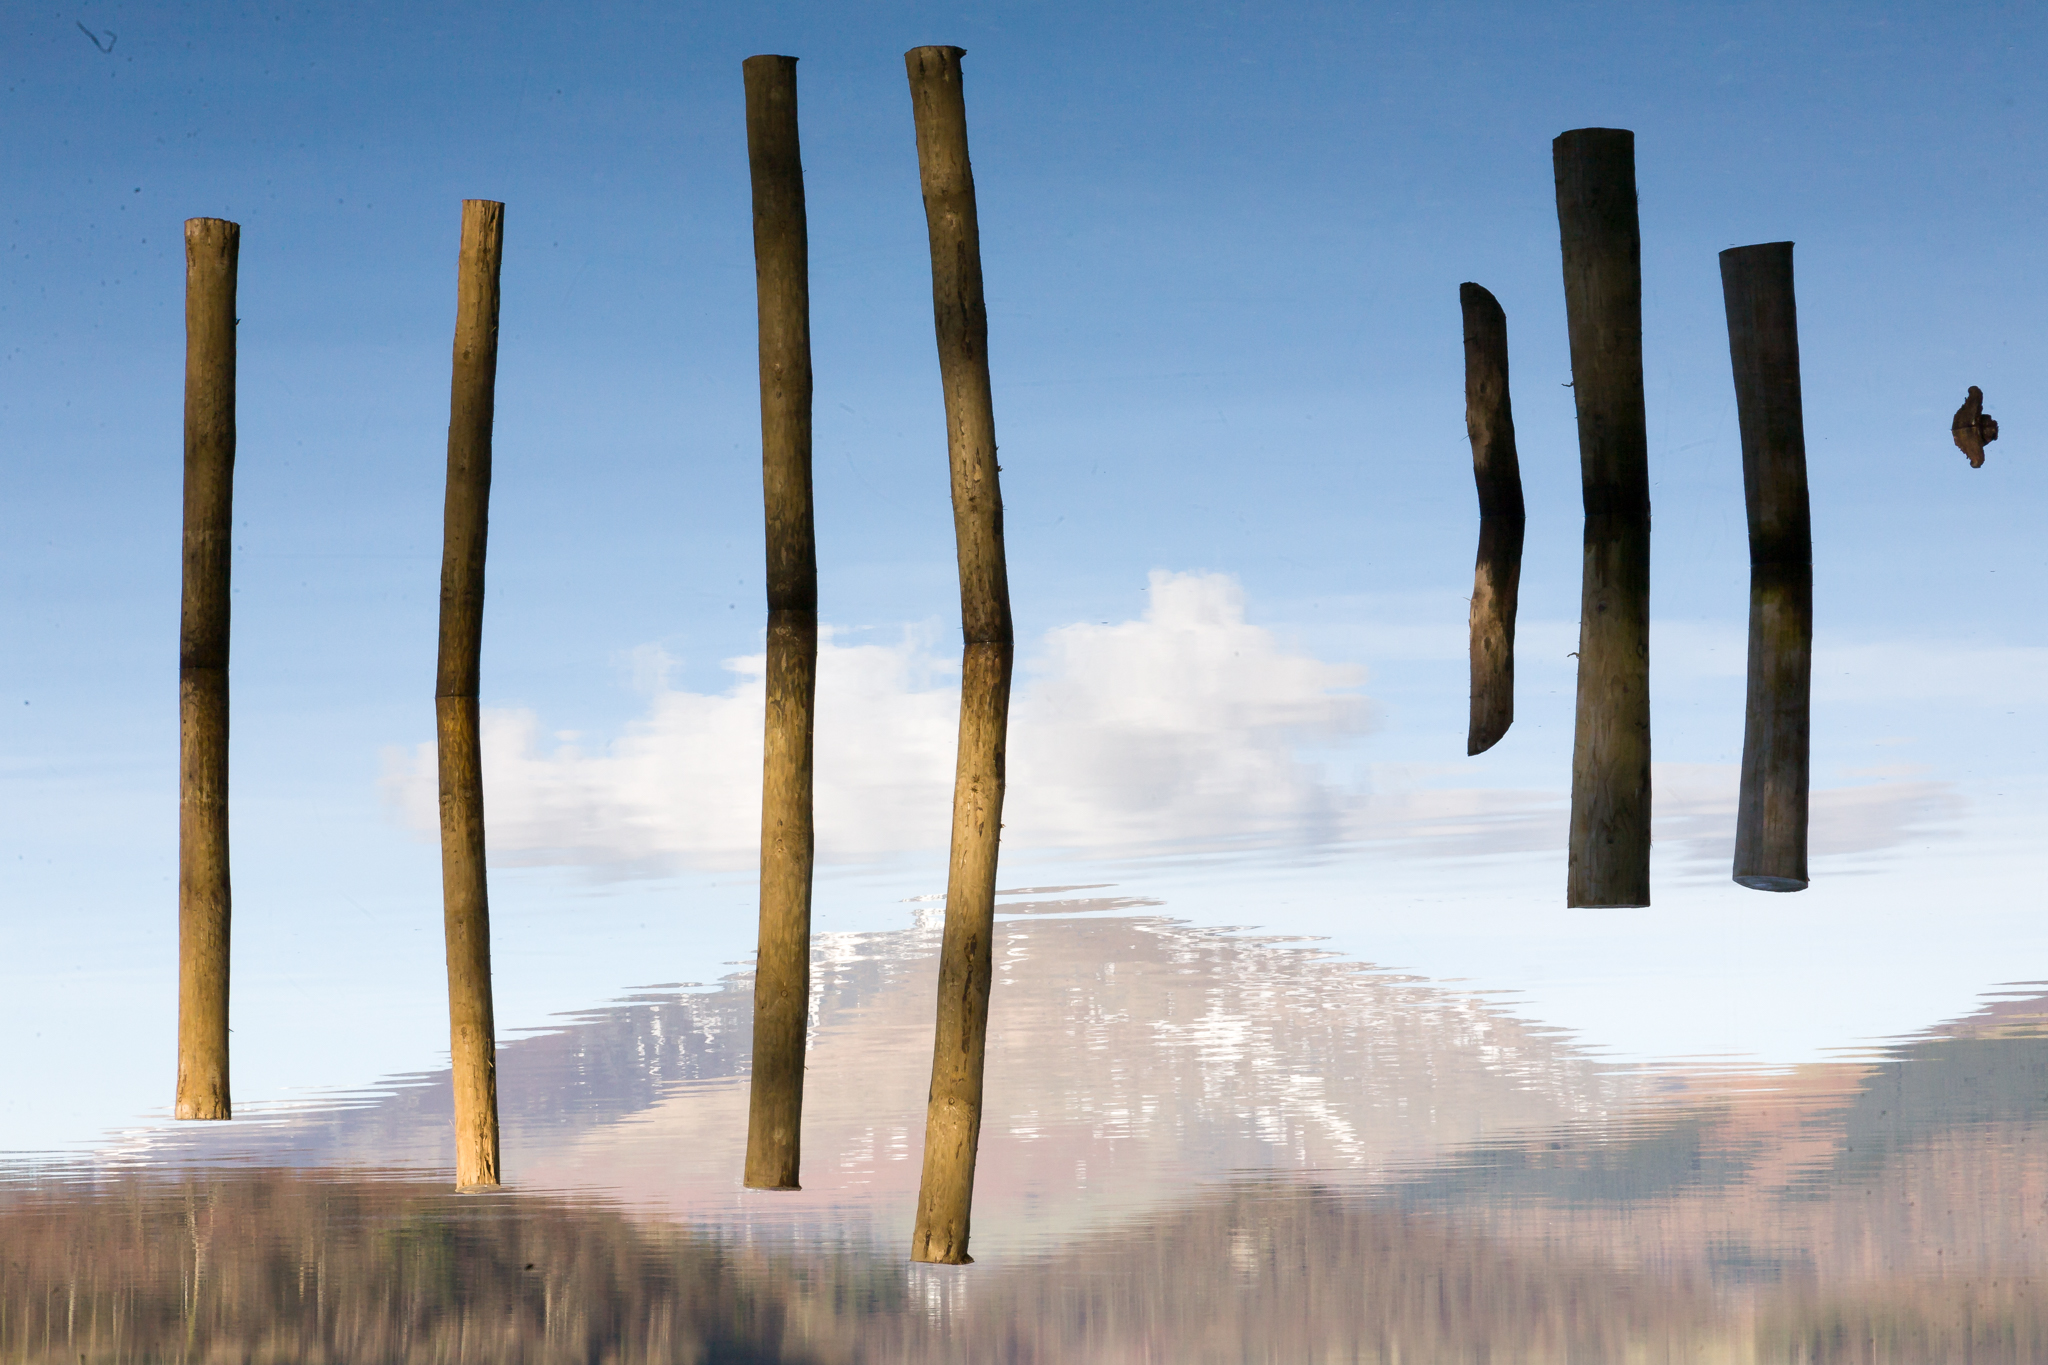 These wood stakes or posts were probably part of an old long gone jetty. They remain upright in the water and on a still day they are reflected as if in a mirror, so that you cna barely tell which way is up. Taken at Derwent water, Keswick, in the English Lake District.